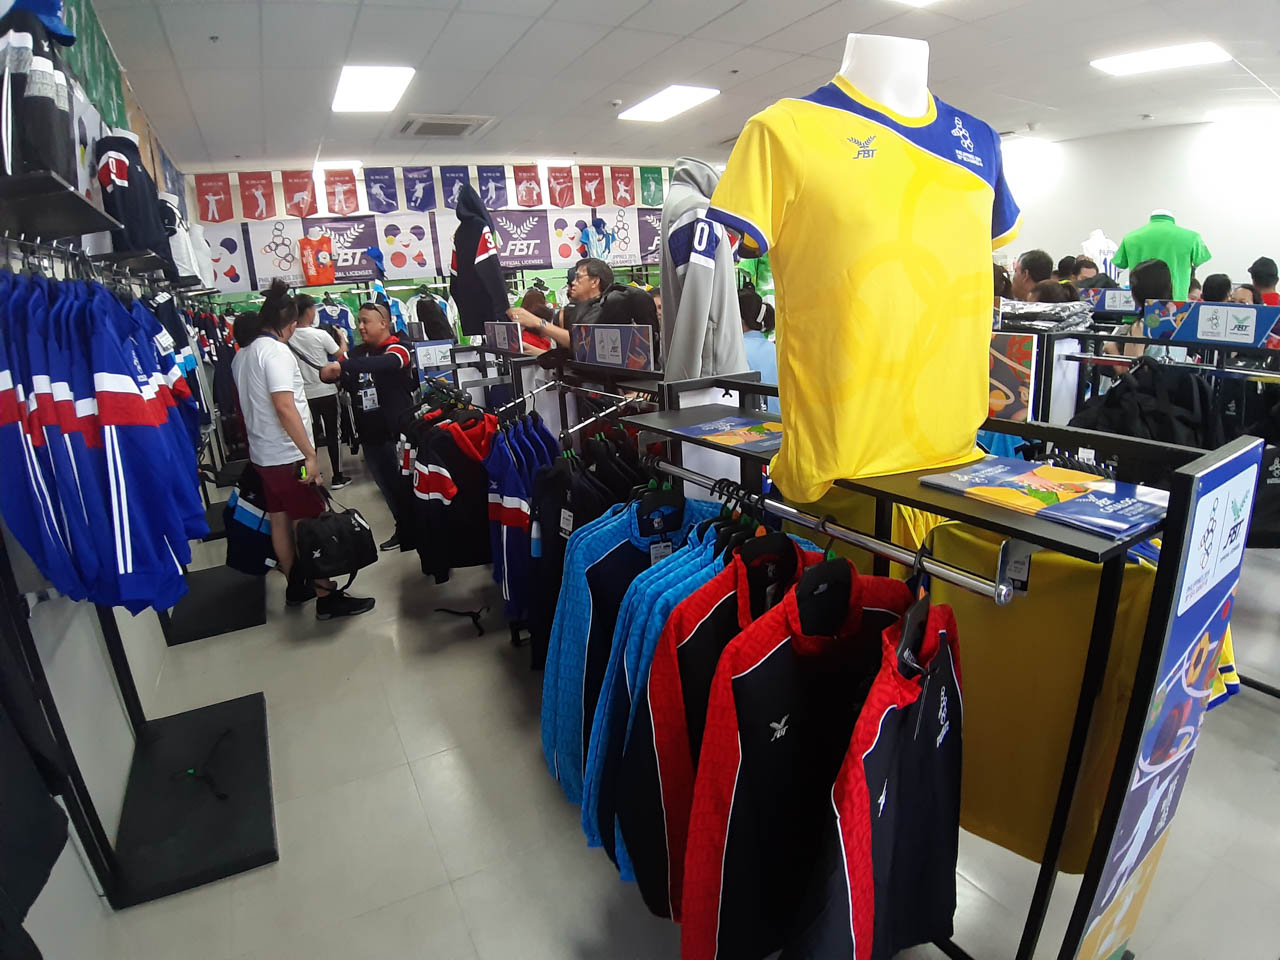 P999. Dri-fit shirts from FBT cost close to P1,000. Photo by Mau Victa/Rappler